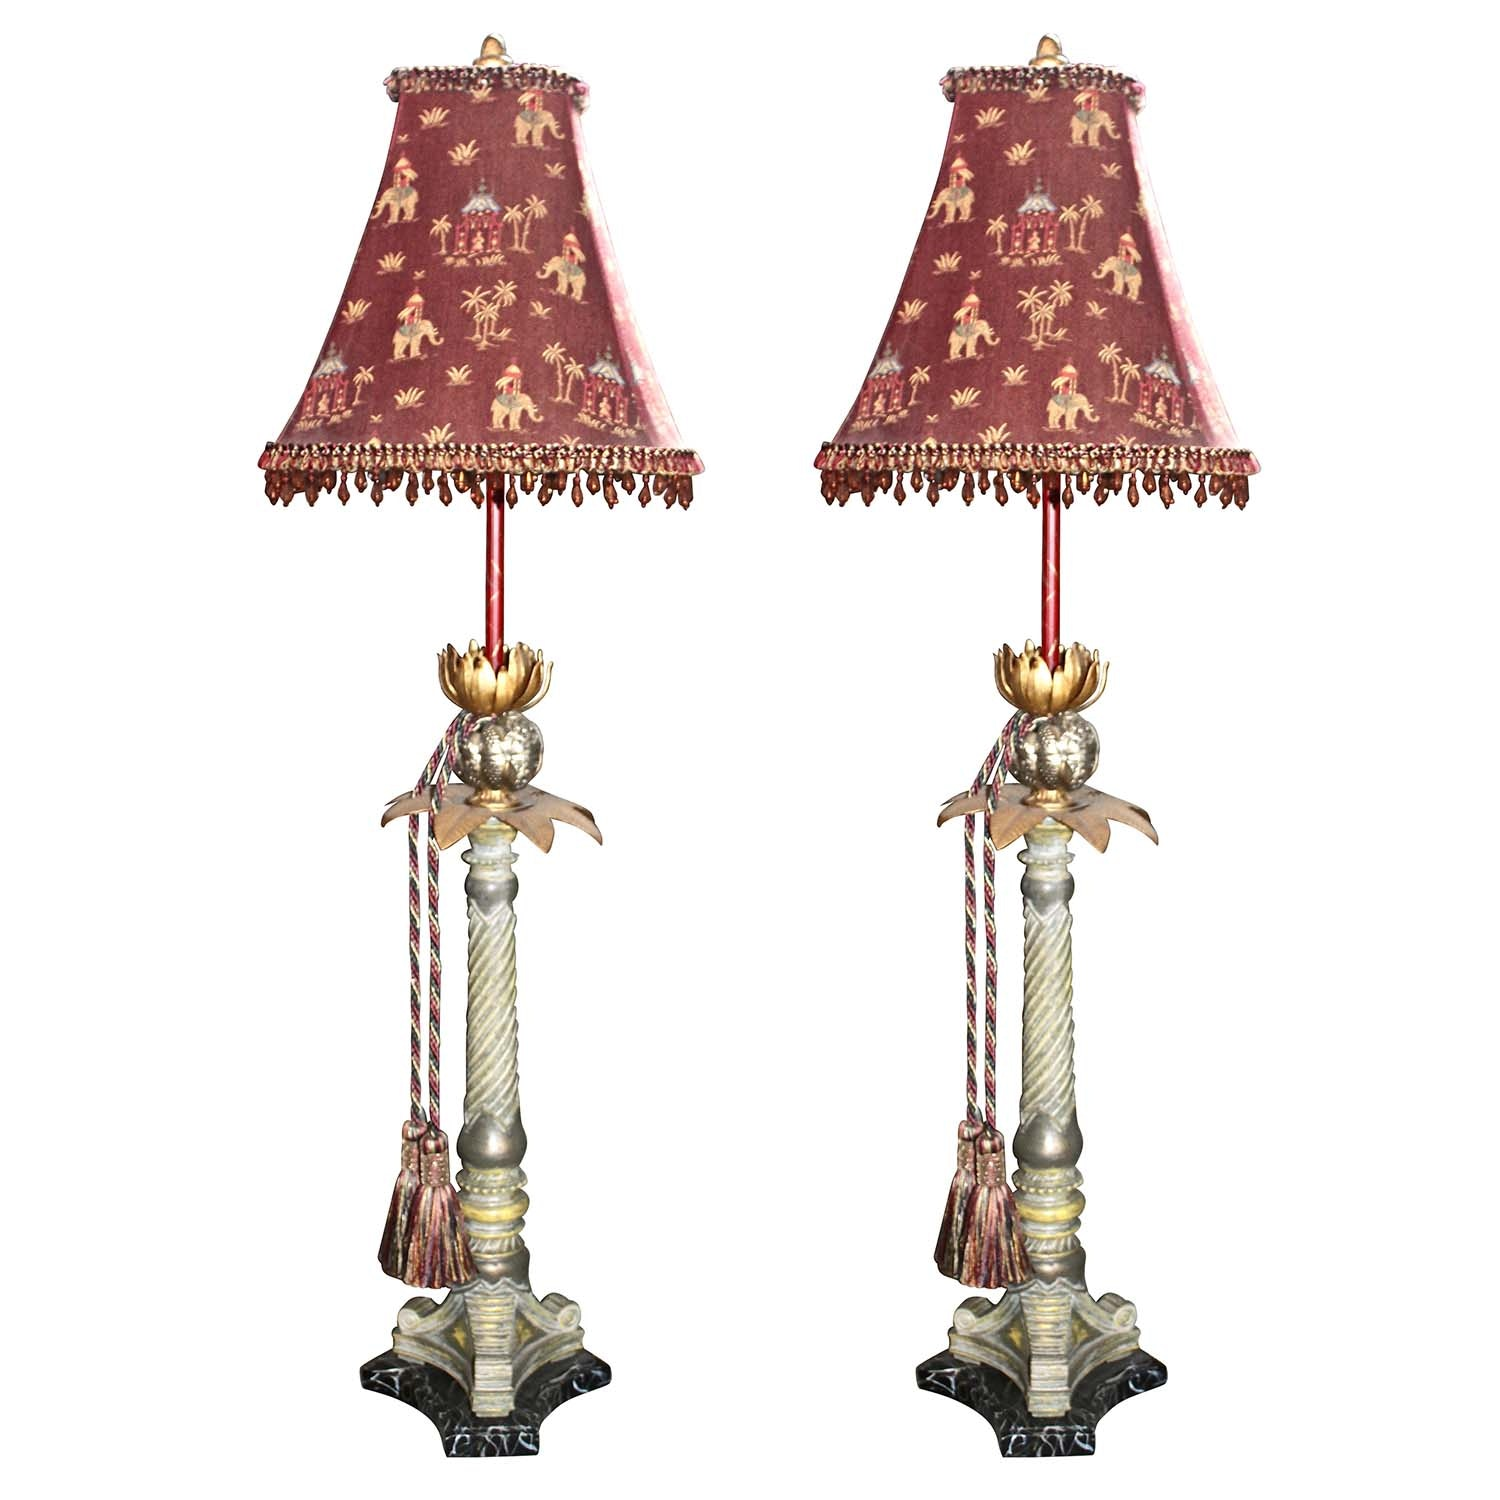 Two Buffet Style Palm Tree Table Lamps